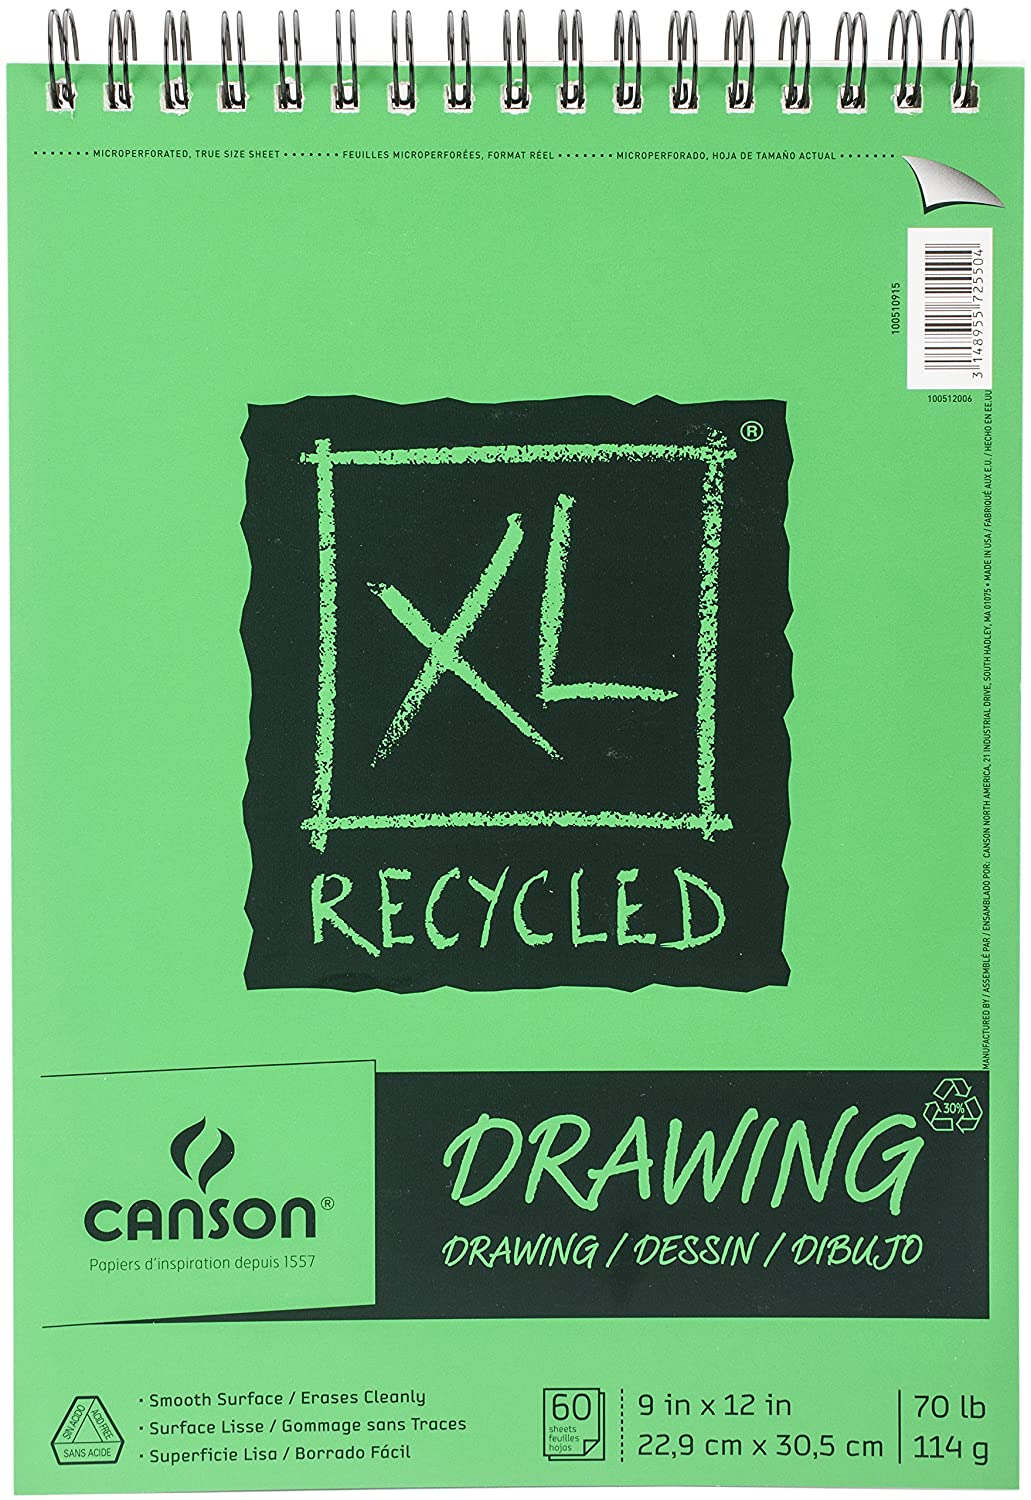 Canson XL Recycled Spiral Drawing Paper Pad 9-inch x 12-inch60 Sheets 702-2402